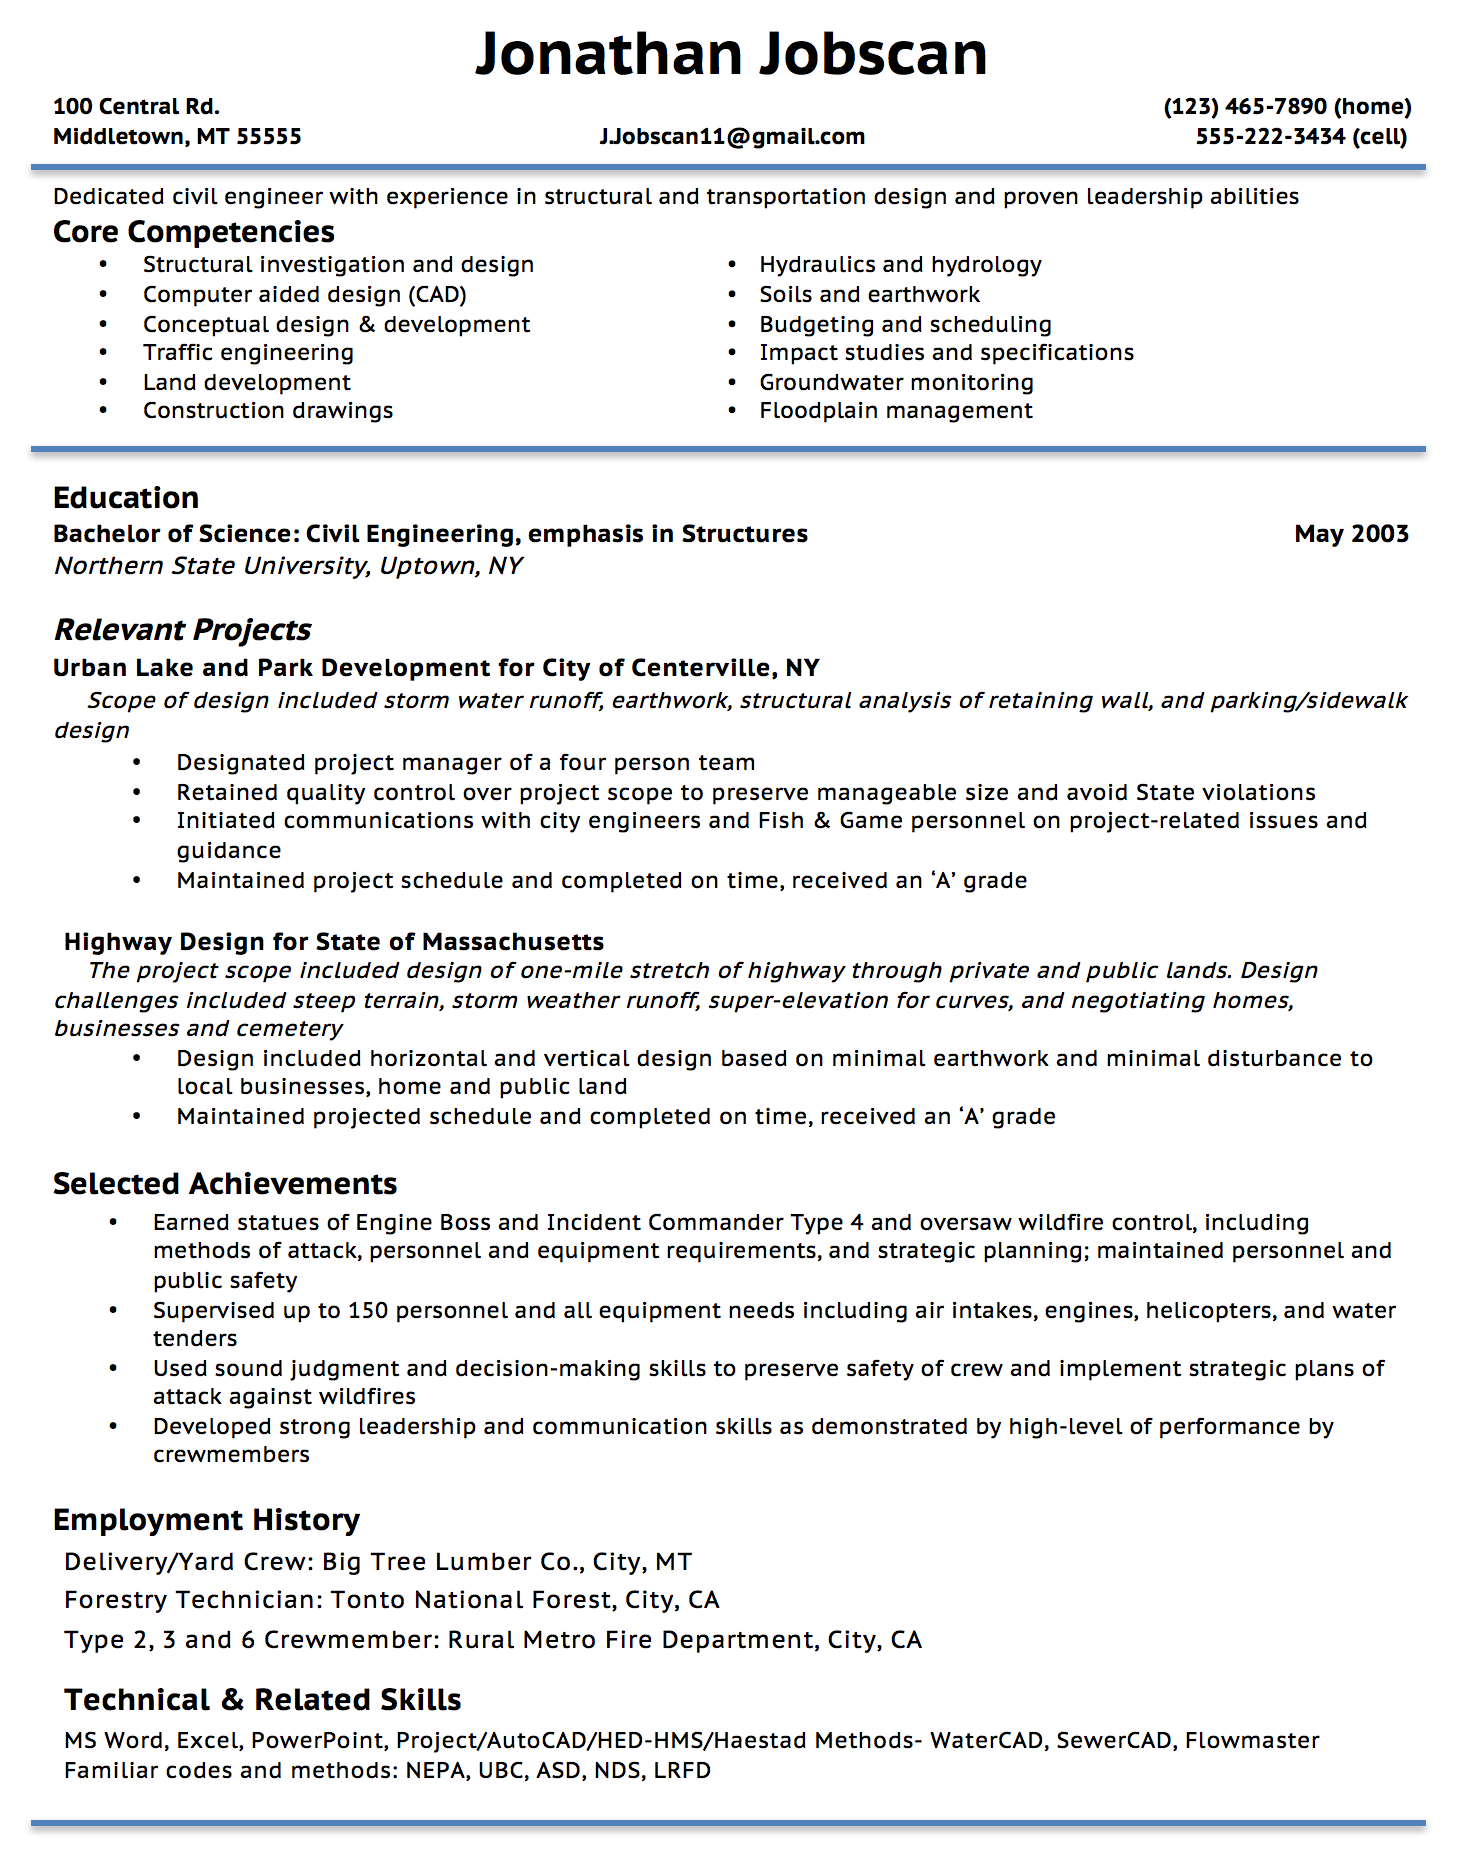 Opposenewapstandardsus  Stunning Resume Writing Guide  Jobscan With Entrancing Example Of A Functional Resume Format With Captivating Sample Construction Resume Also Professional Resume Cover Letter In Addition Hobbies And Interests Resume And Skills On A Resume Example As Well As Professional Profile On Resume Additionally How To Write A Killer Resume From Jobscanco With Opposenewapstandardsus  Entrancing Resume Writing Guide  Jobscan With Captivating Example Of A Functional Resume Format And Stunning Sample Construction Resume Also Professional Resume Cover Letter In Addition Hobbies And Interests Resume From Jobscanco